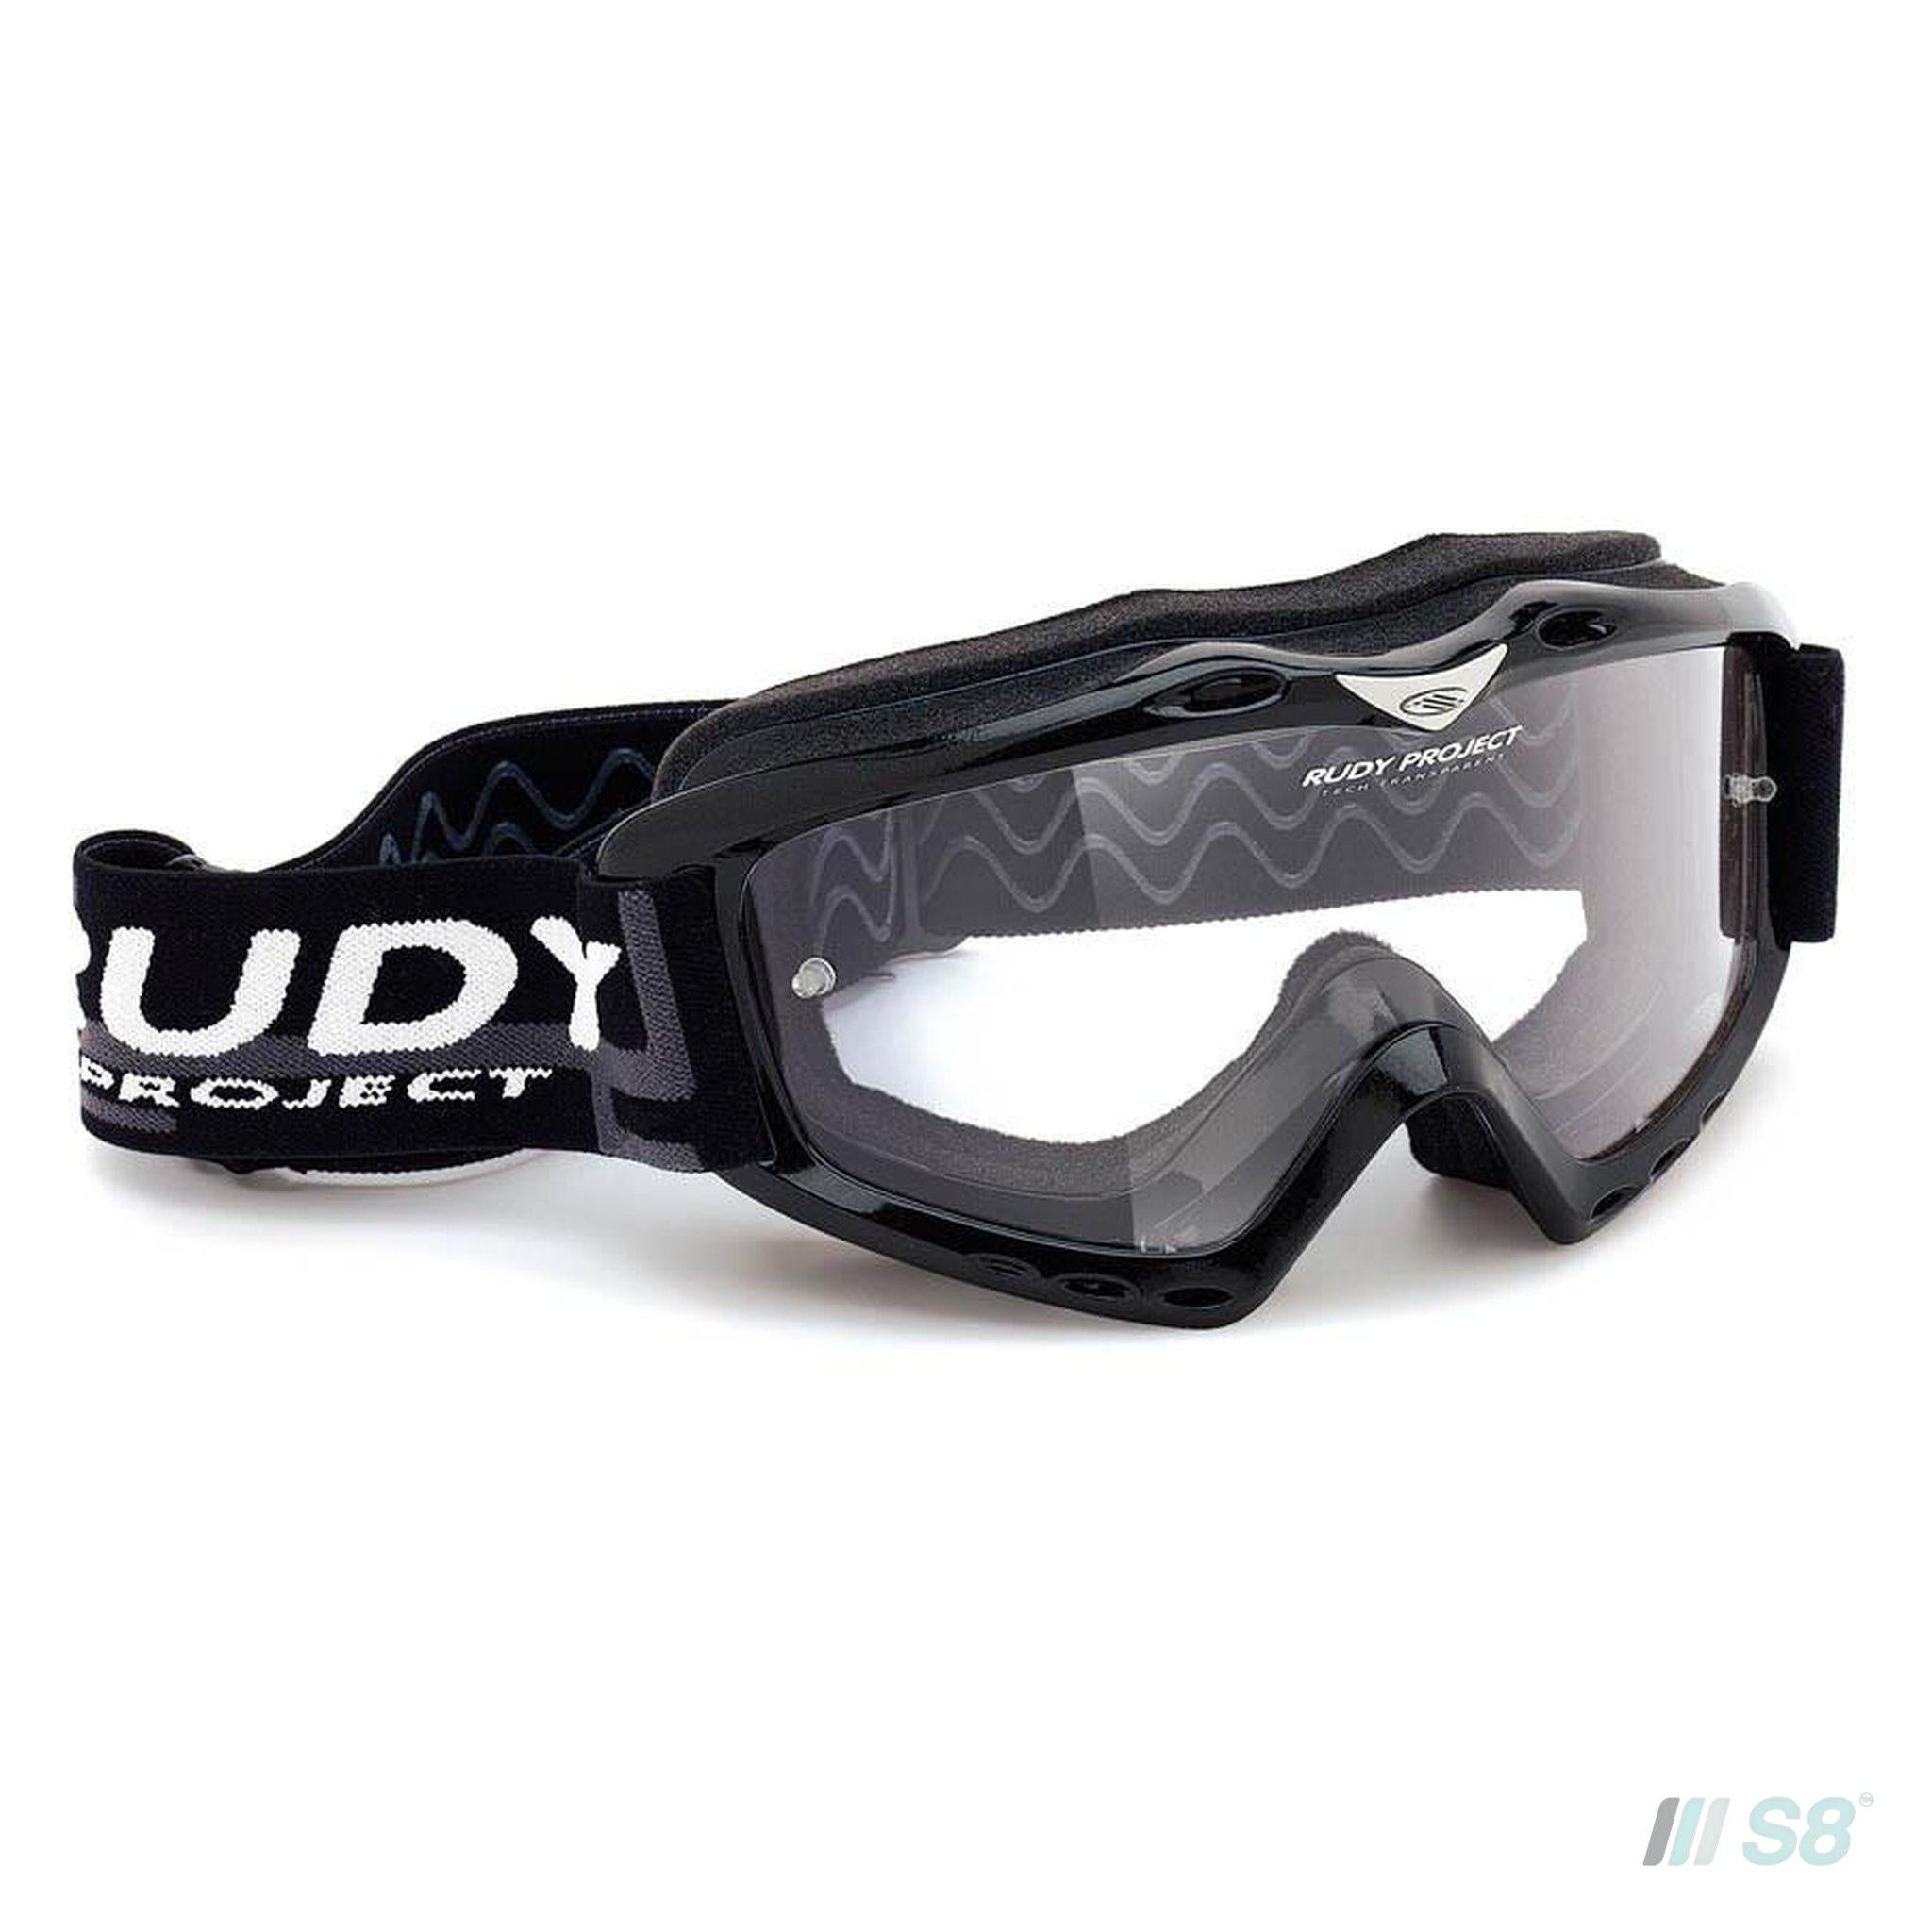 Rudy Project - Klonyx Motorcross / Black Gloss / Transparent lens-Rudy Project-S8 Products Group